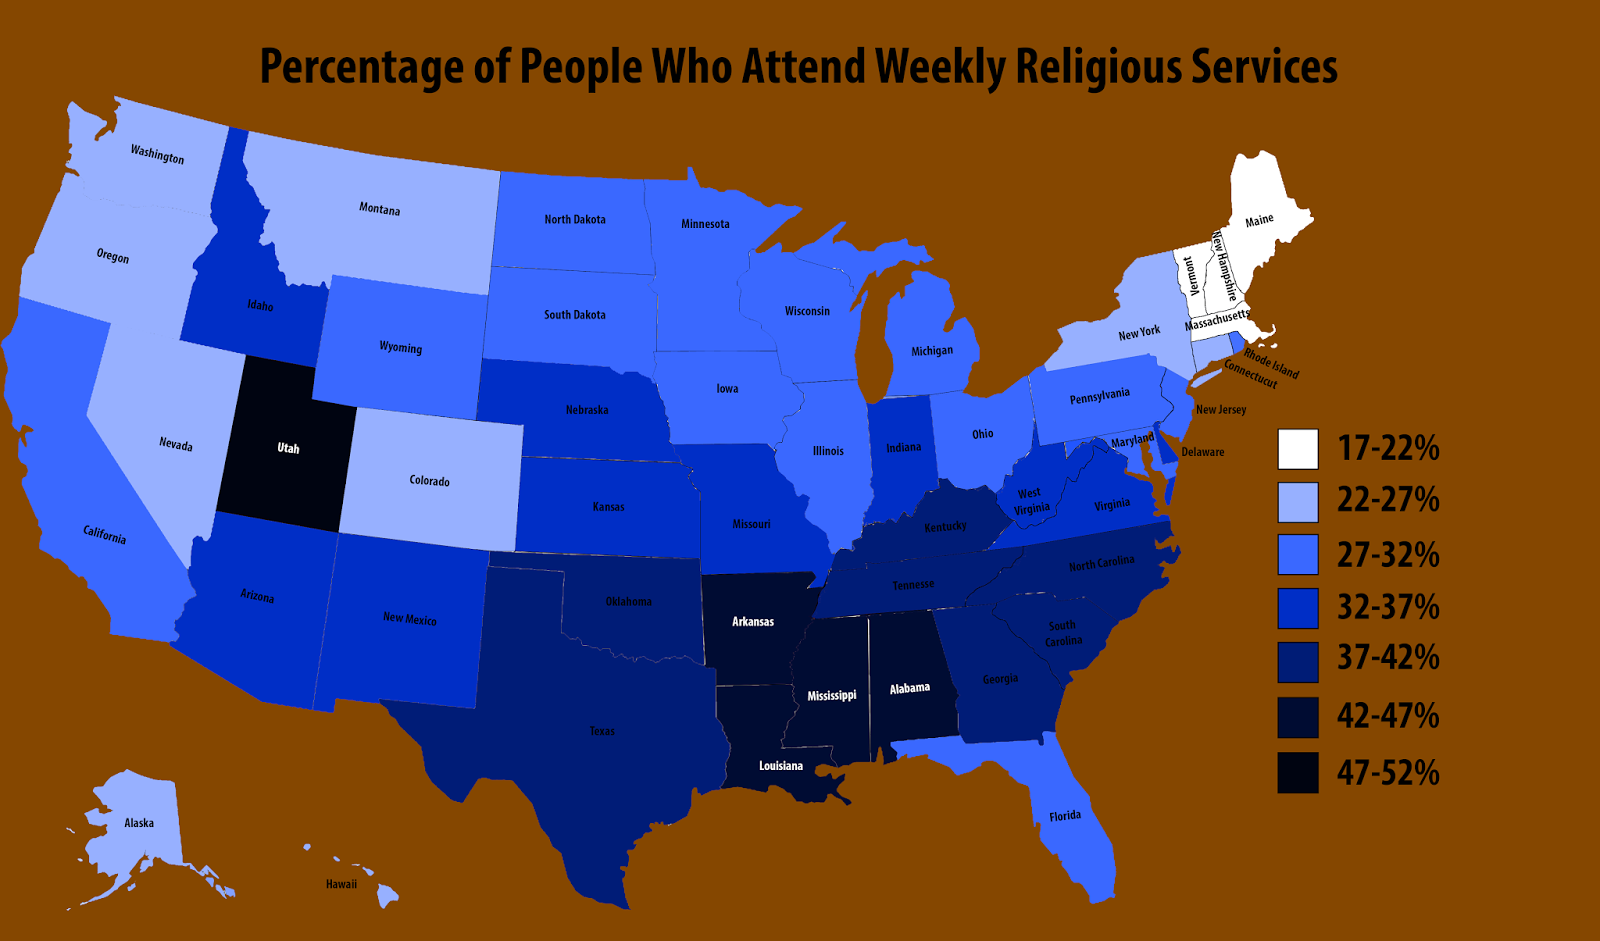 Percentage of people who attend weekly religious service